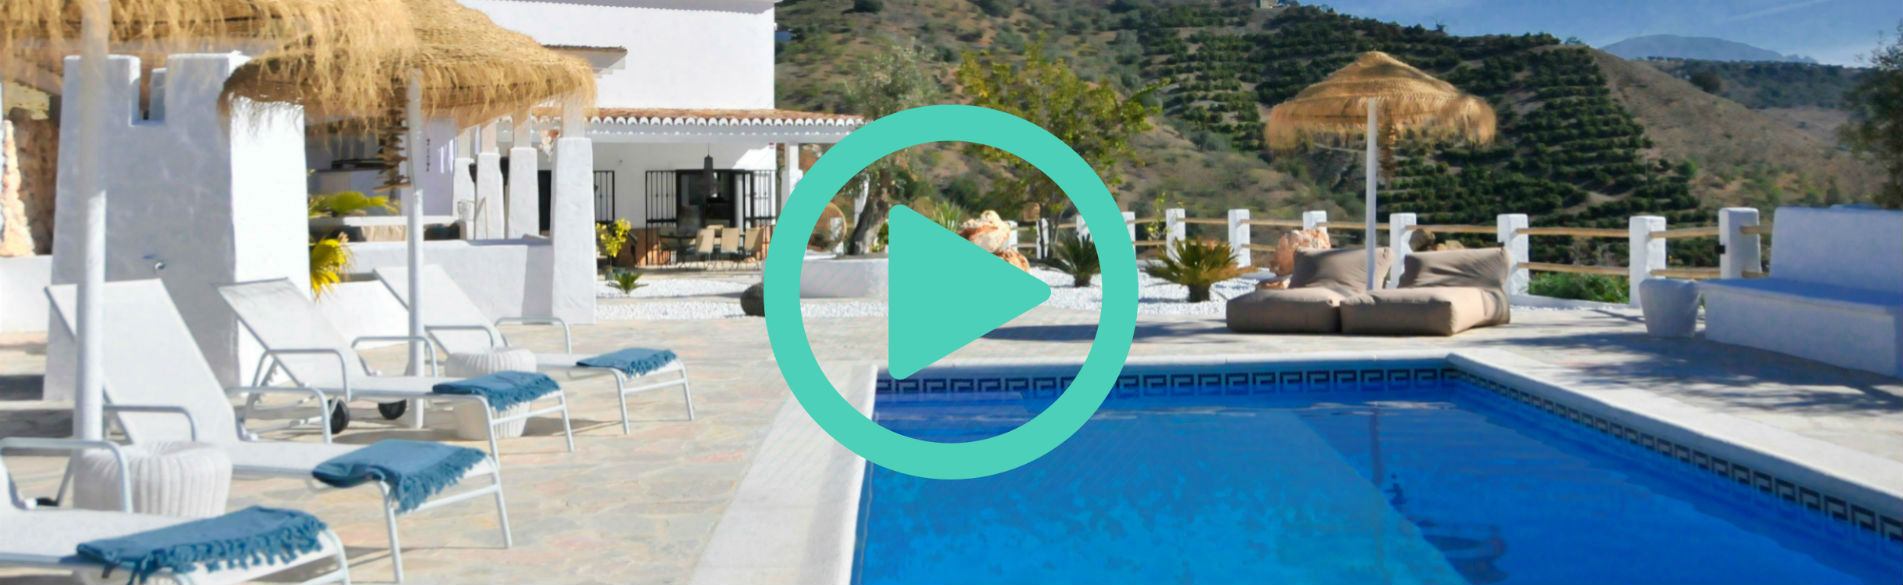 villa pepita andalousie banner video